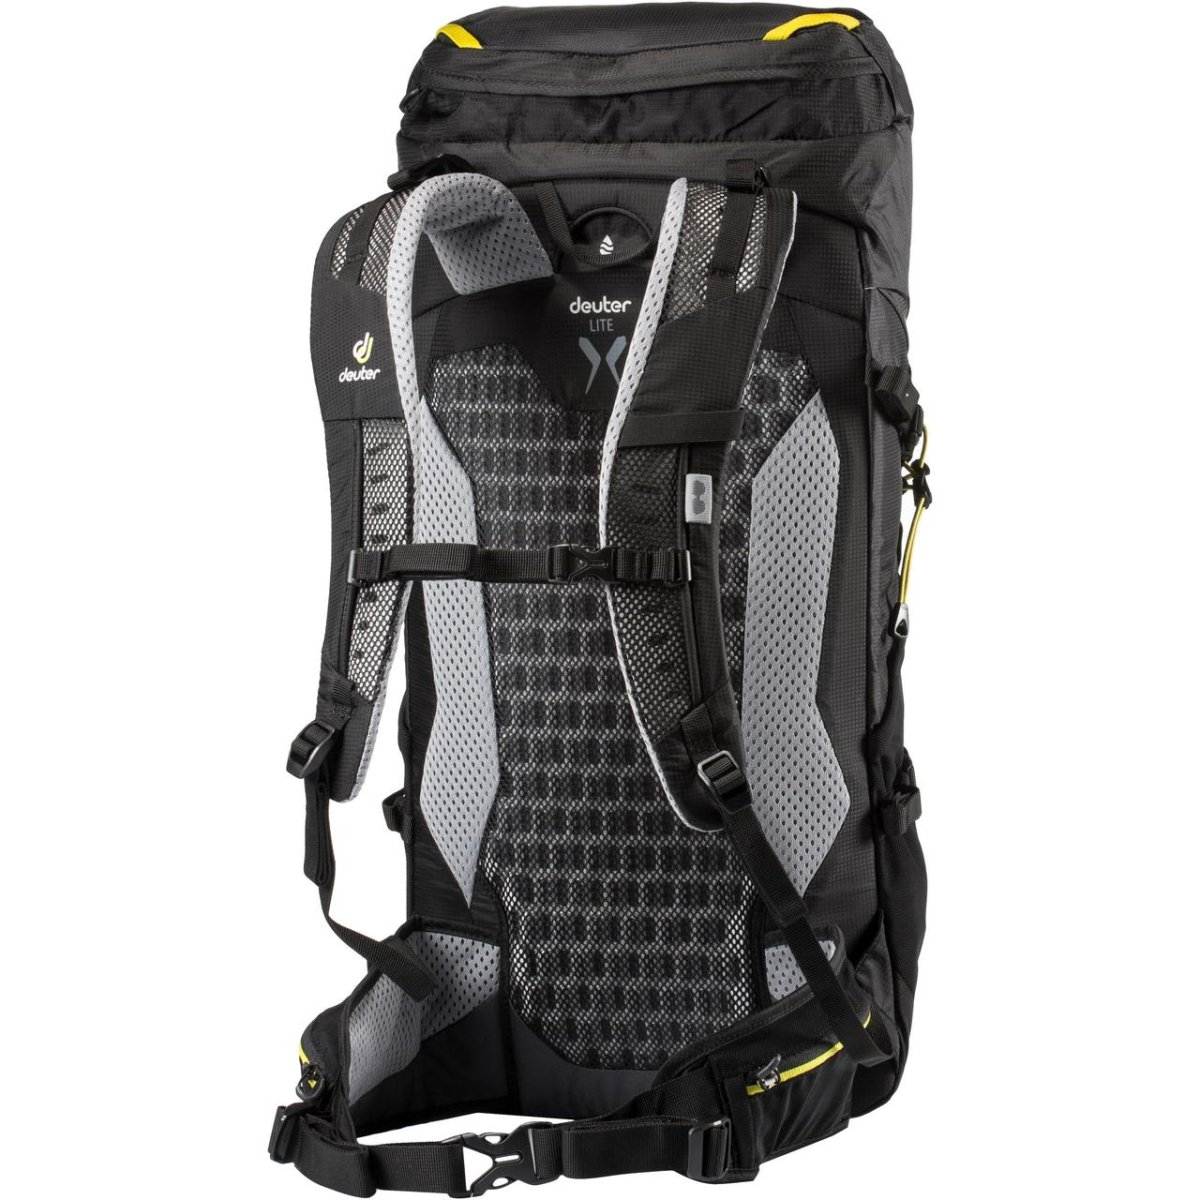 Рюкзак Deuter Speed Lite 26 maron-cranberry (5535) Speed Lite 26 4 3410618 5535